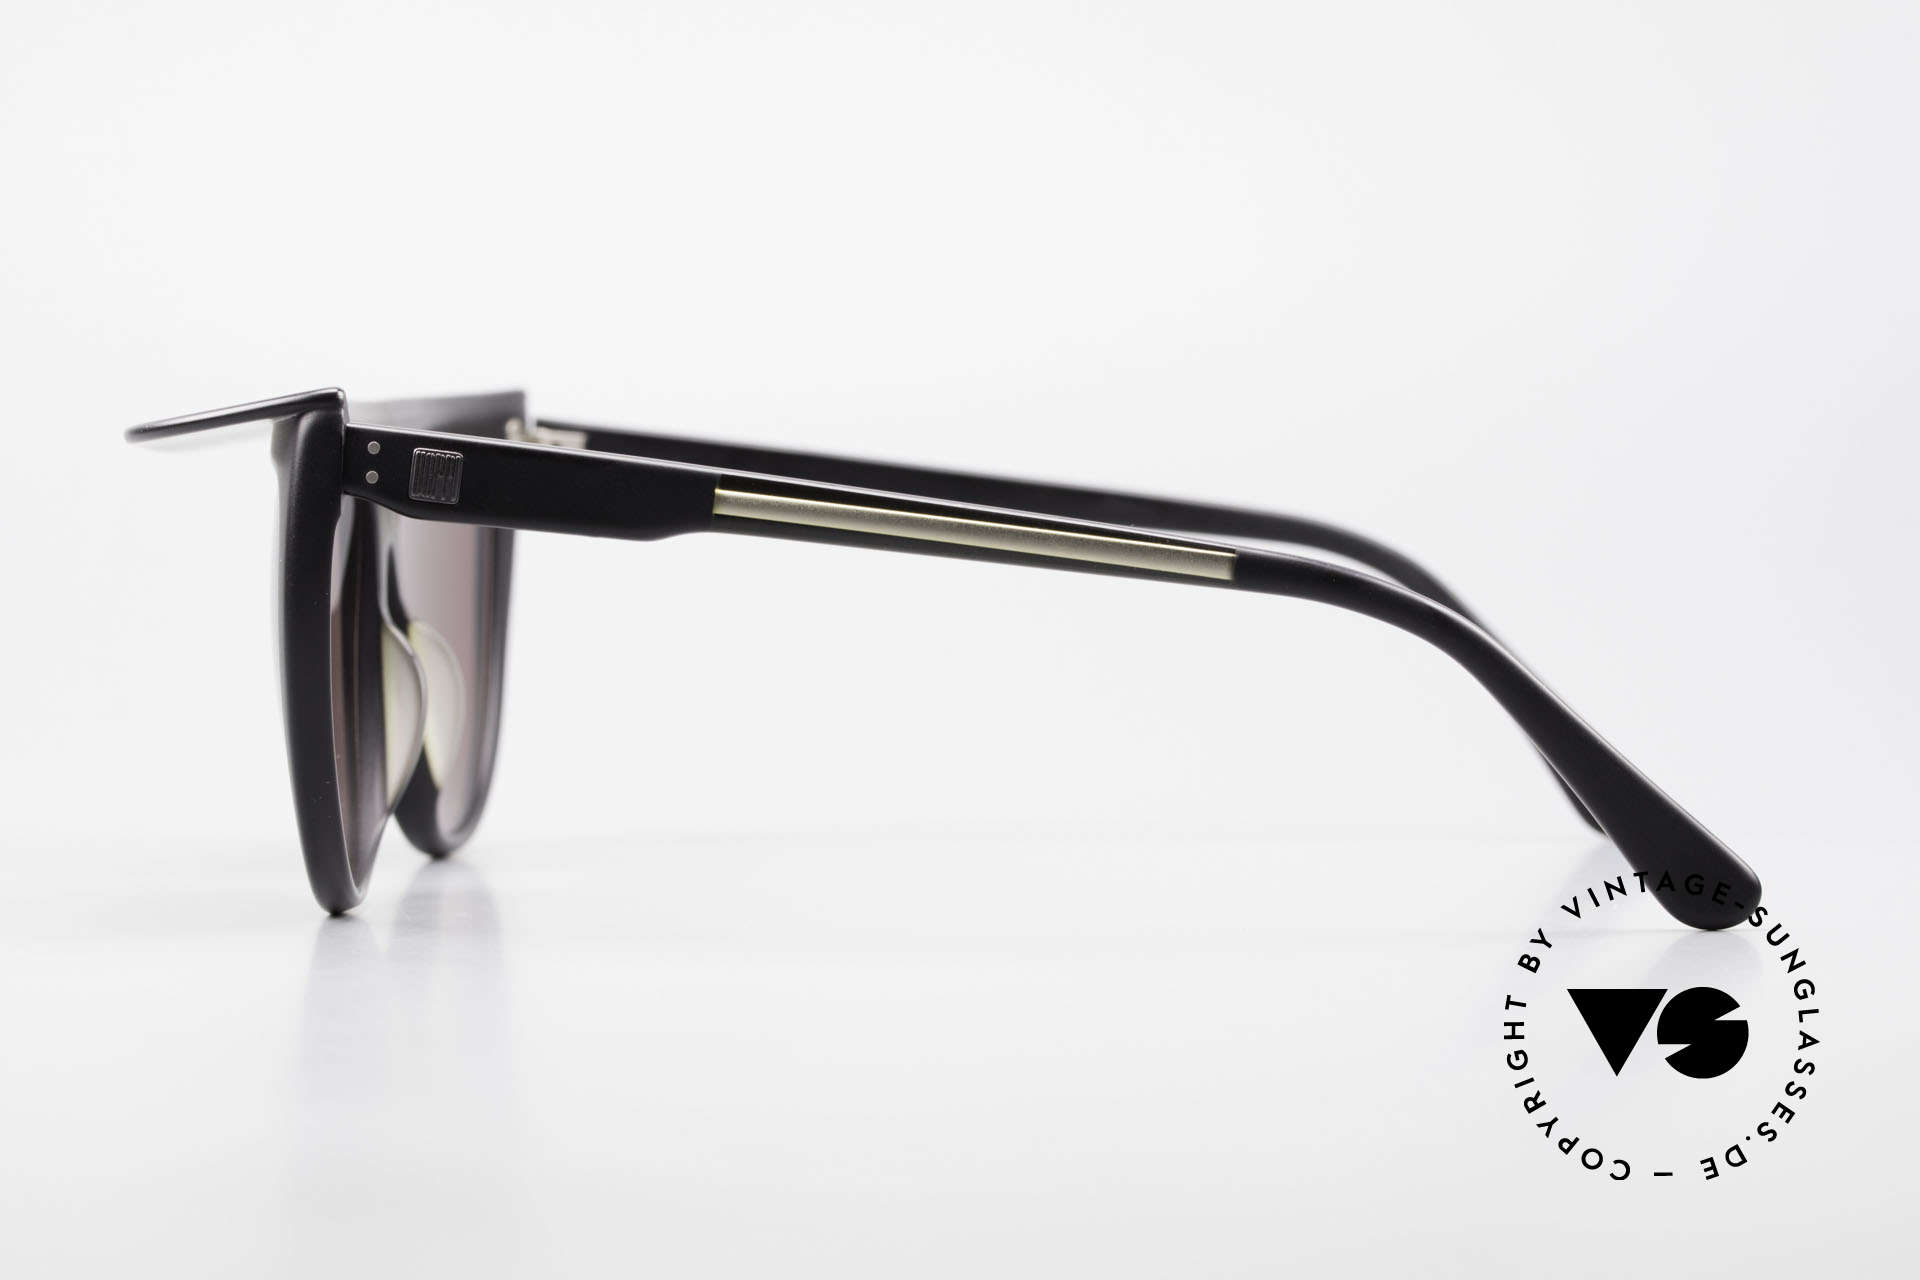 Ugppi 9801 Marquee Sunglasses 90s Japan, something really different, interesting single piece, Made for Men and Women